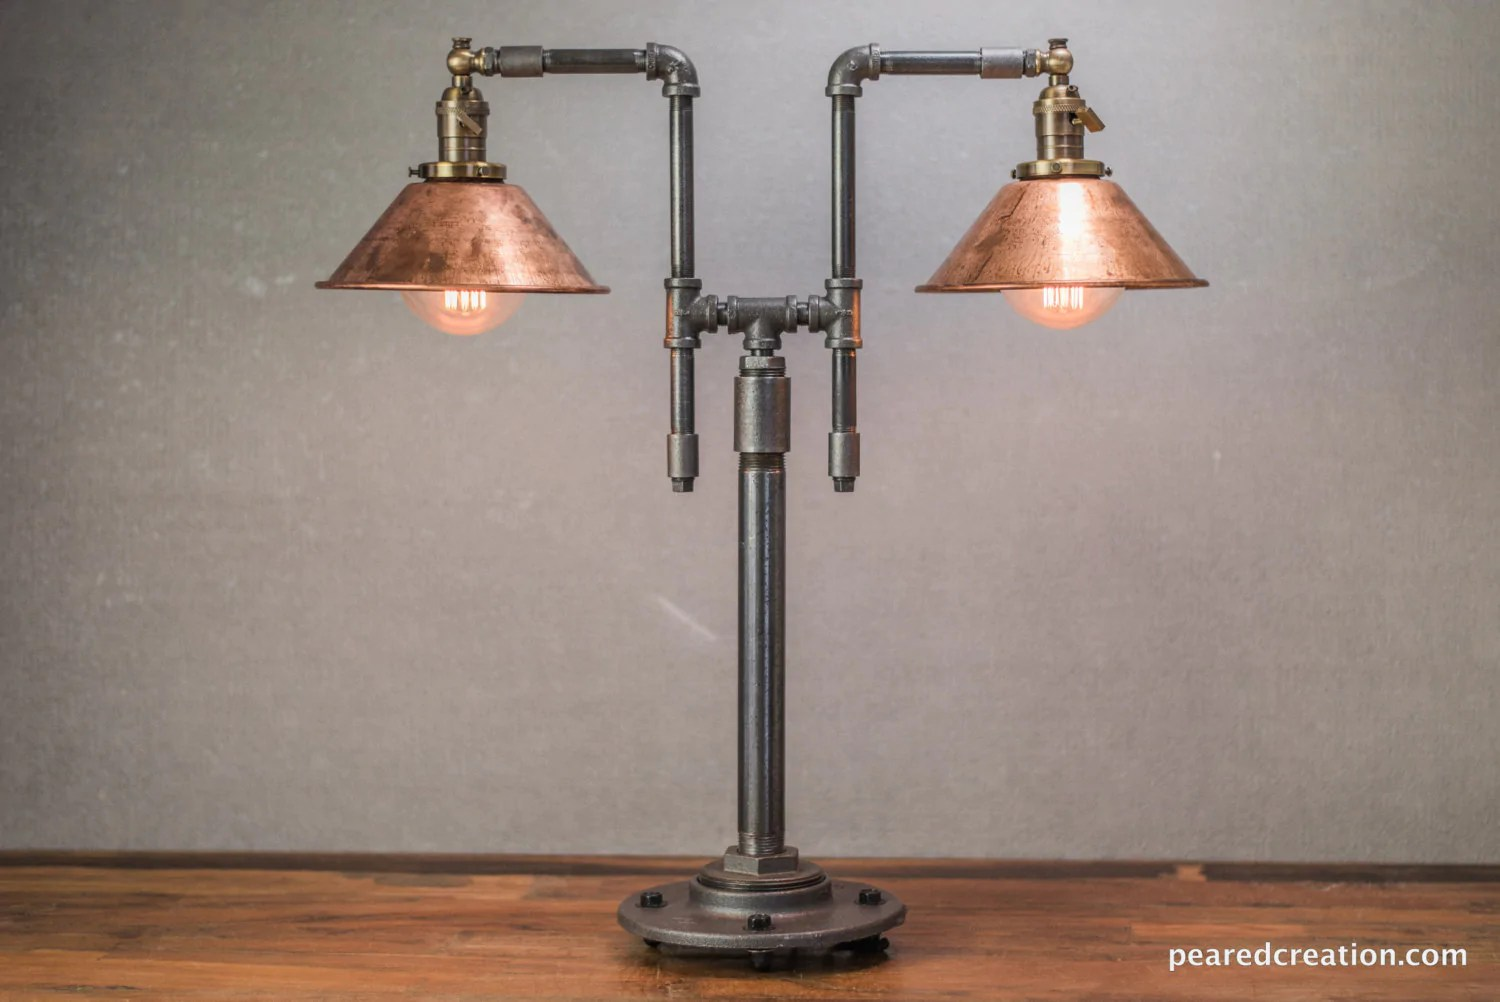 Vintage Table Lamps Vintage Table Lamp Industrial Style Iron Piping Copper Shade Steampunk Furniture Rustic Decor